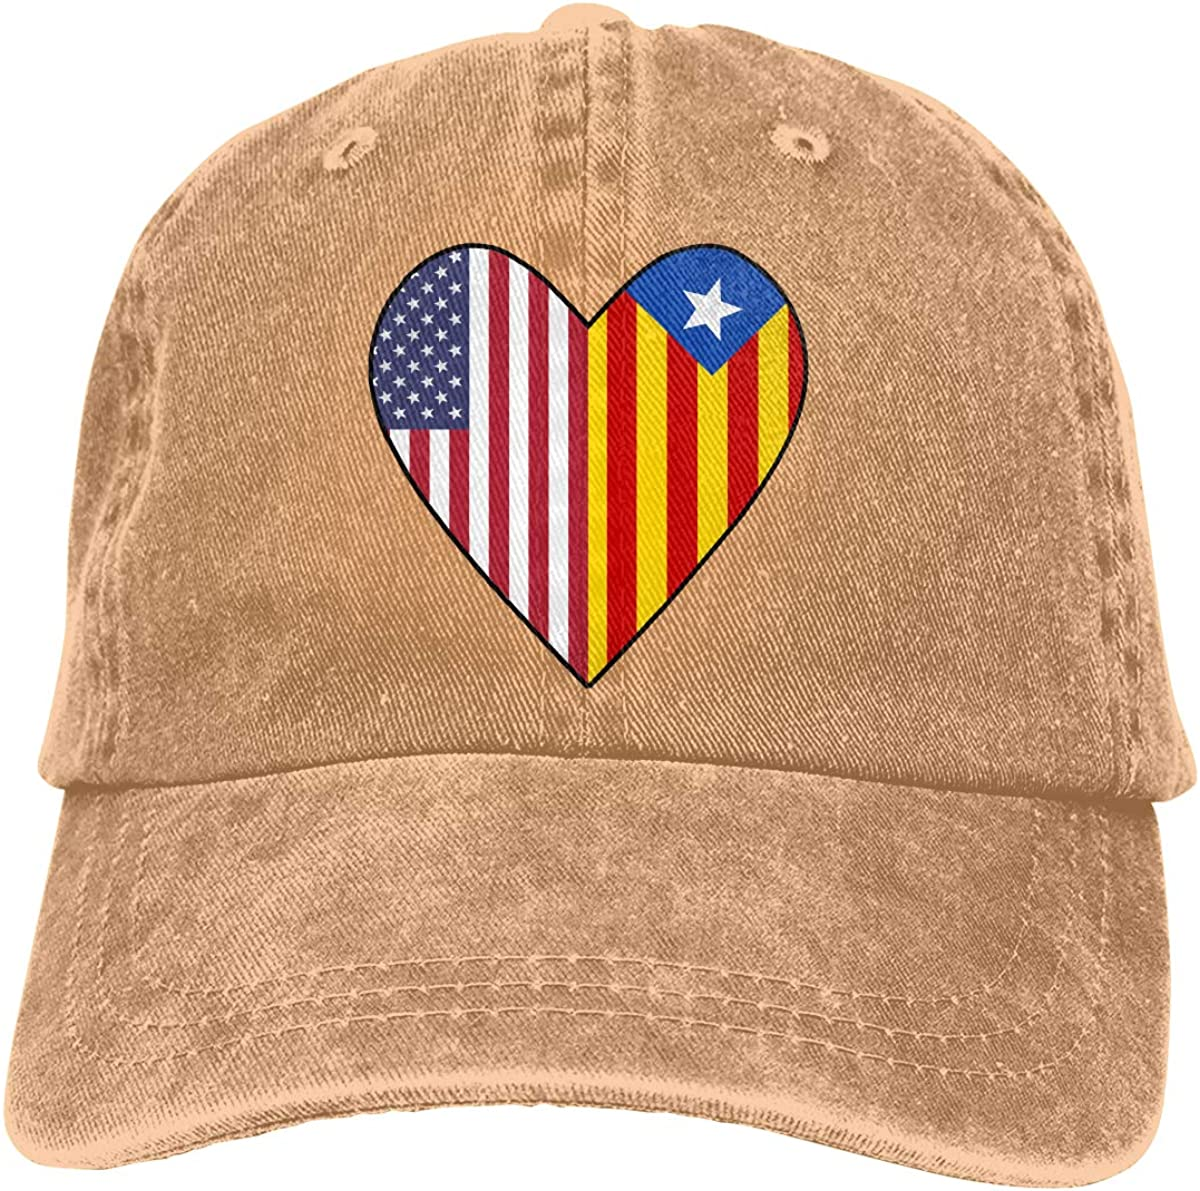 Half Catalonia Flag Half USA Flag Love Heart Unisex Custom Denim Hip Hop Cap Adjustable Baseball Cap